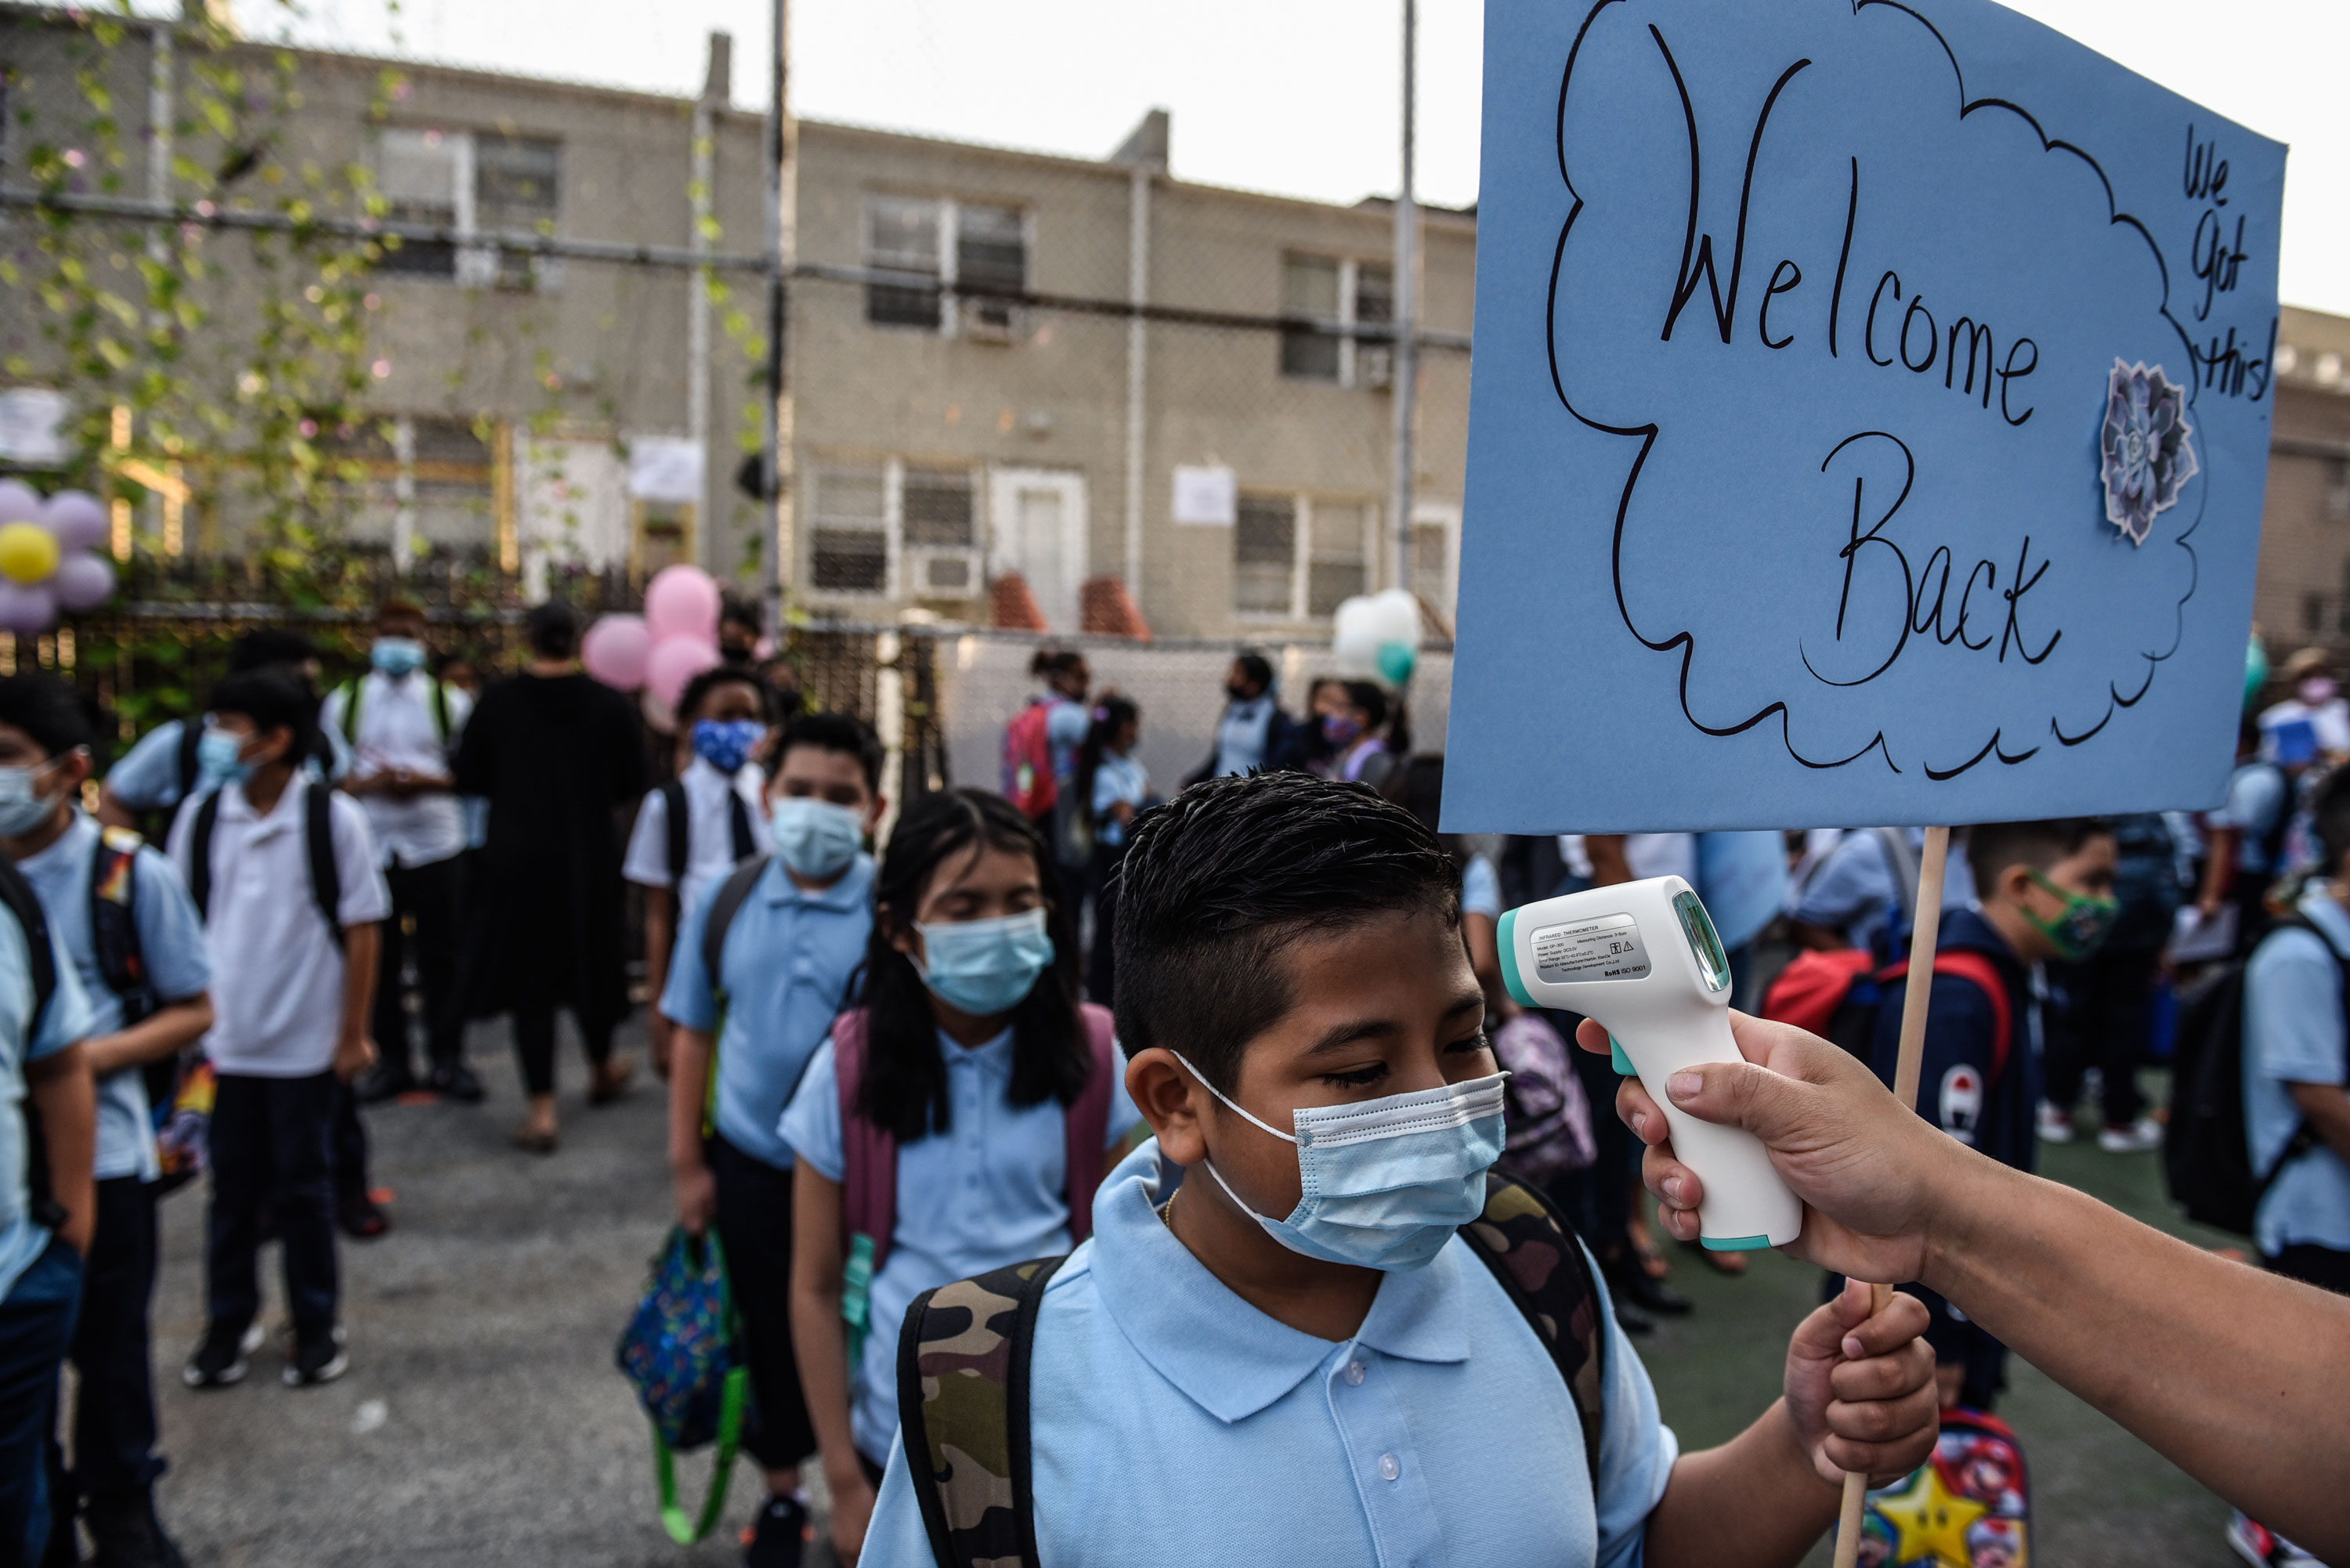 Students wait in line to get their temperature taken before entering a public school in the Bronx on September 13.